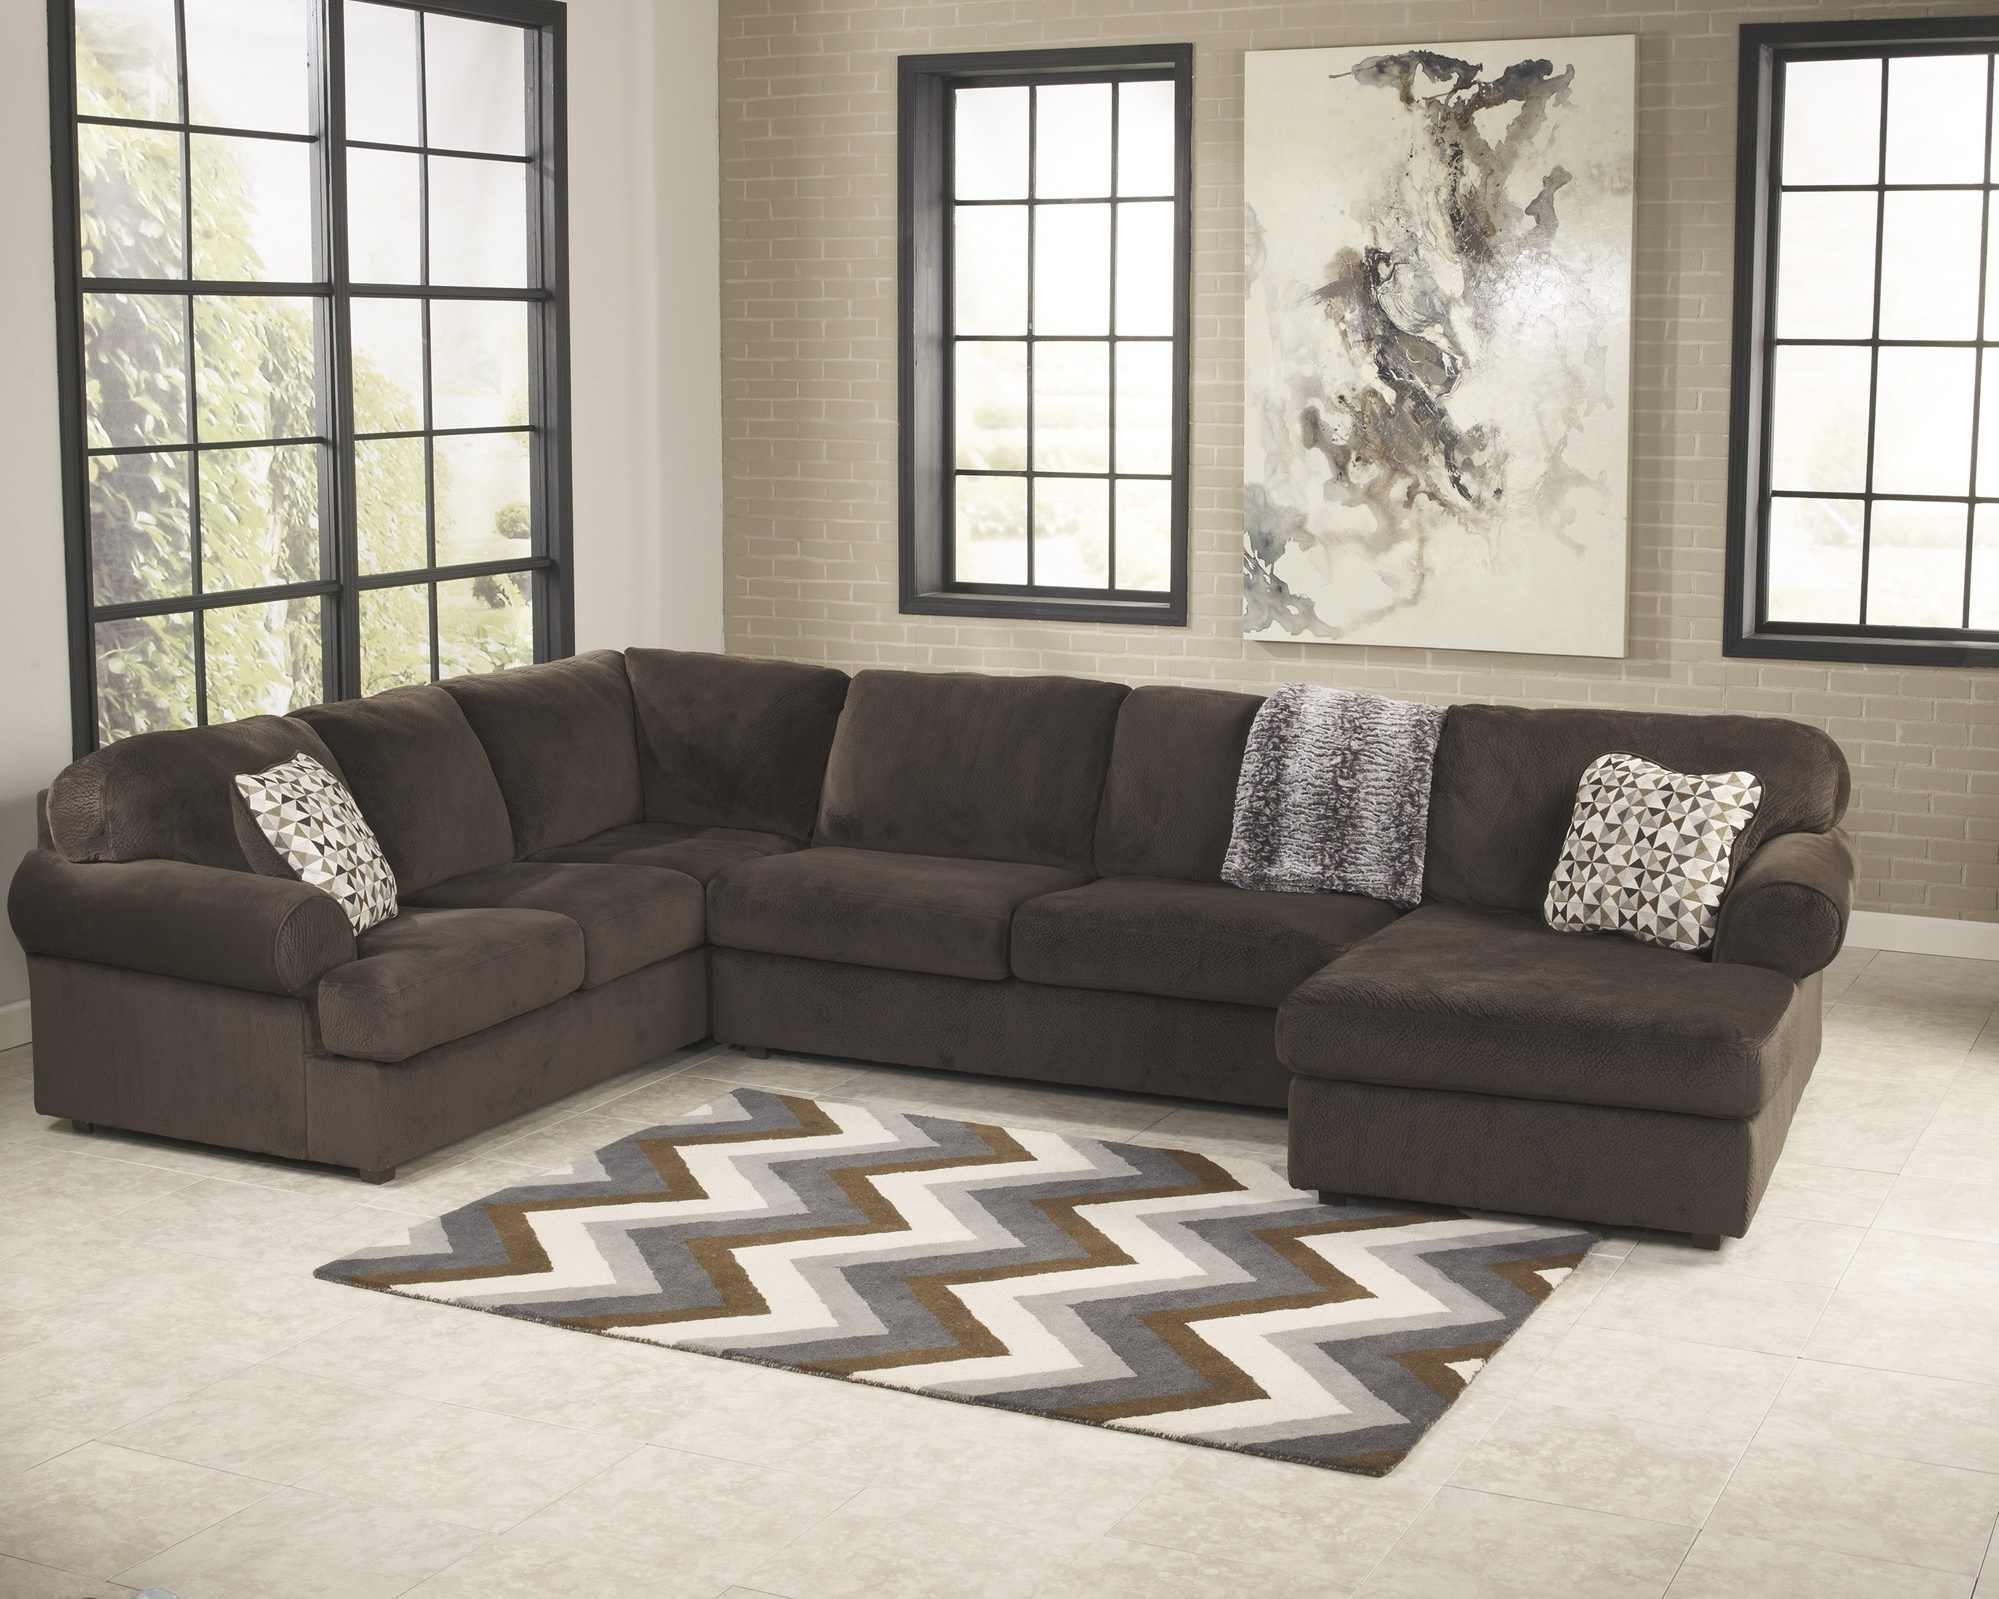 Well Known Jessa Place Chocolate 3 Piece Sectional Sofa For $ (View 12 of 20)